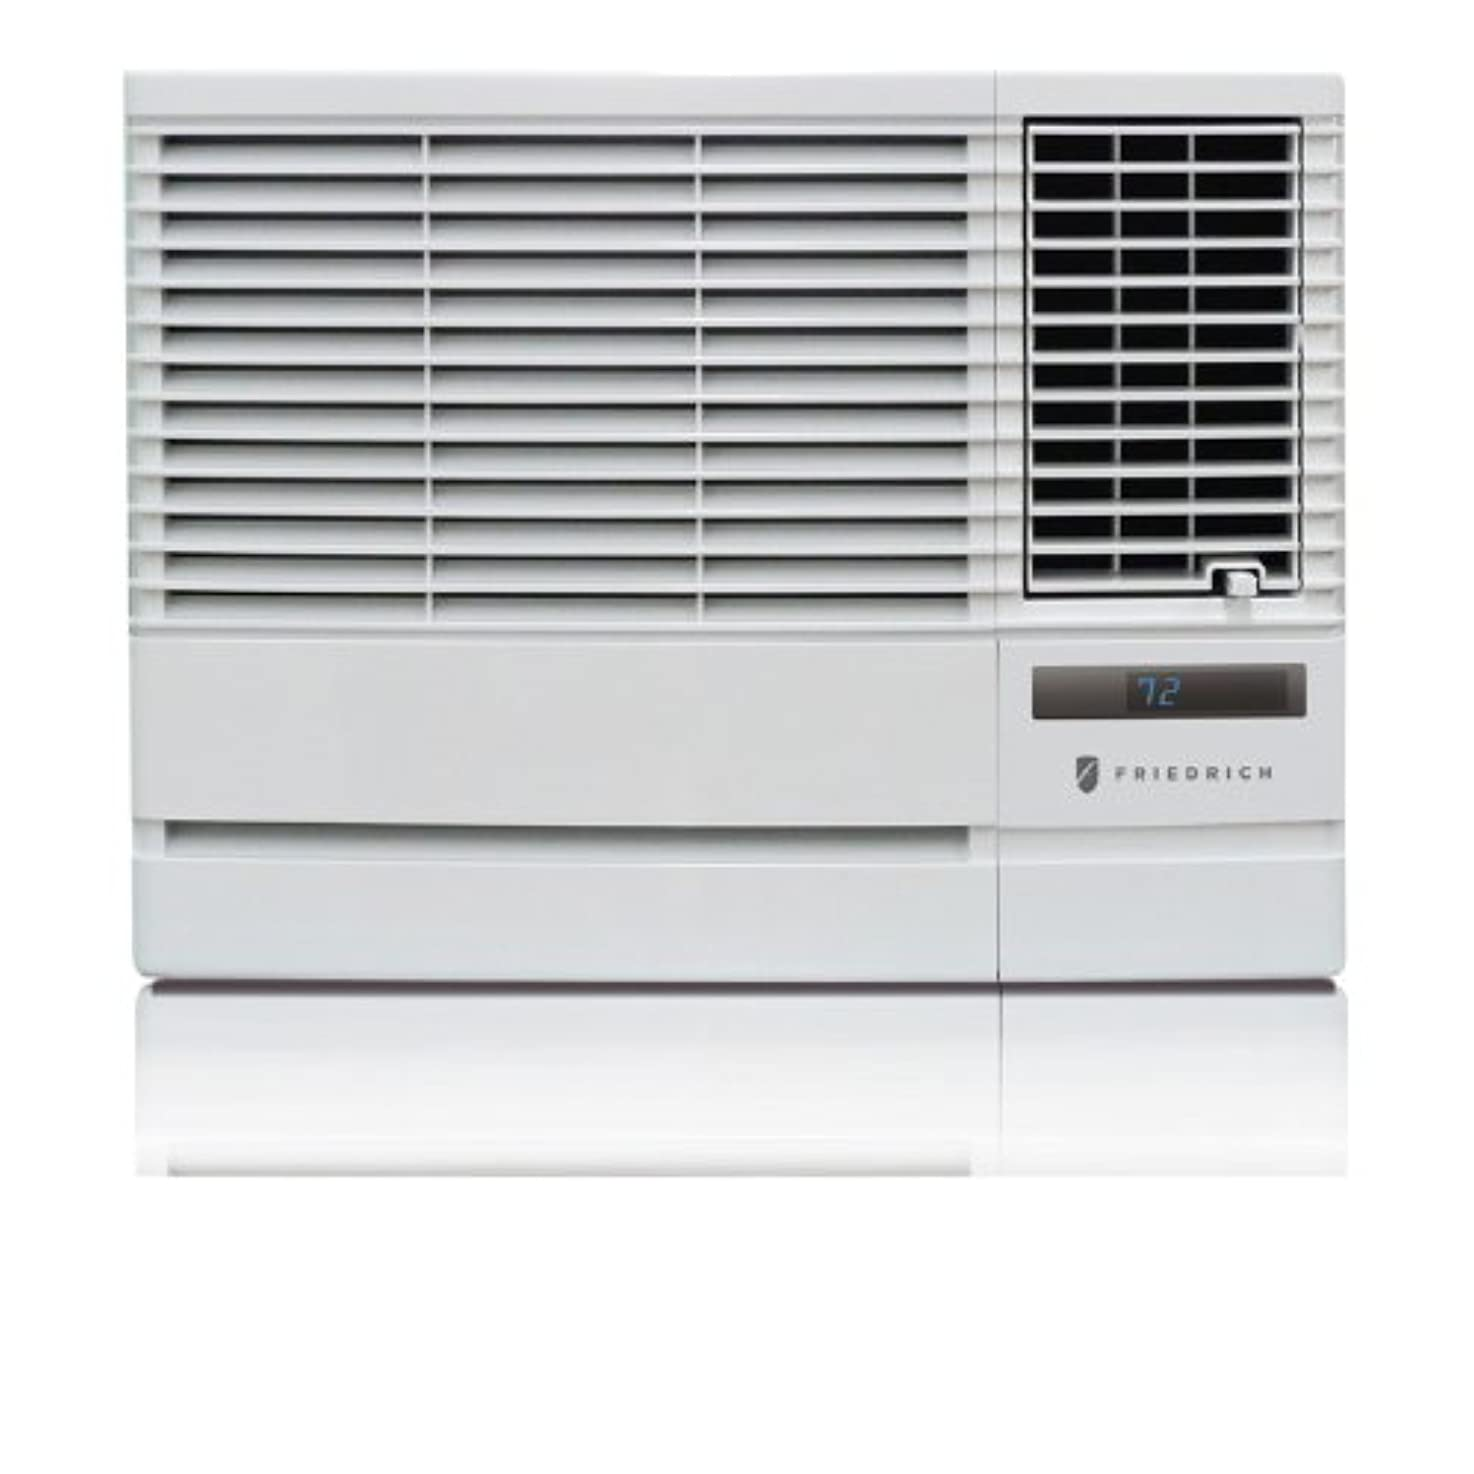 Friedrich Air Conditioning Co. CP08G10B Air Conditioner, 8000 Btu, White lzkjjflvzsdlx4